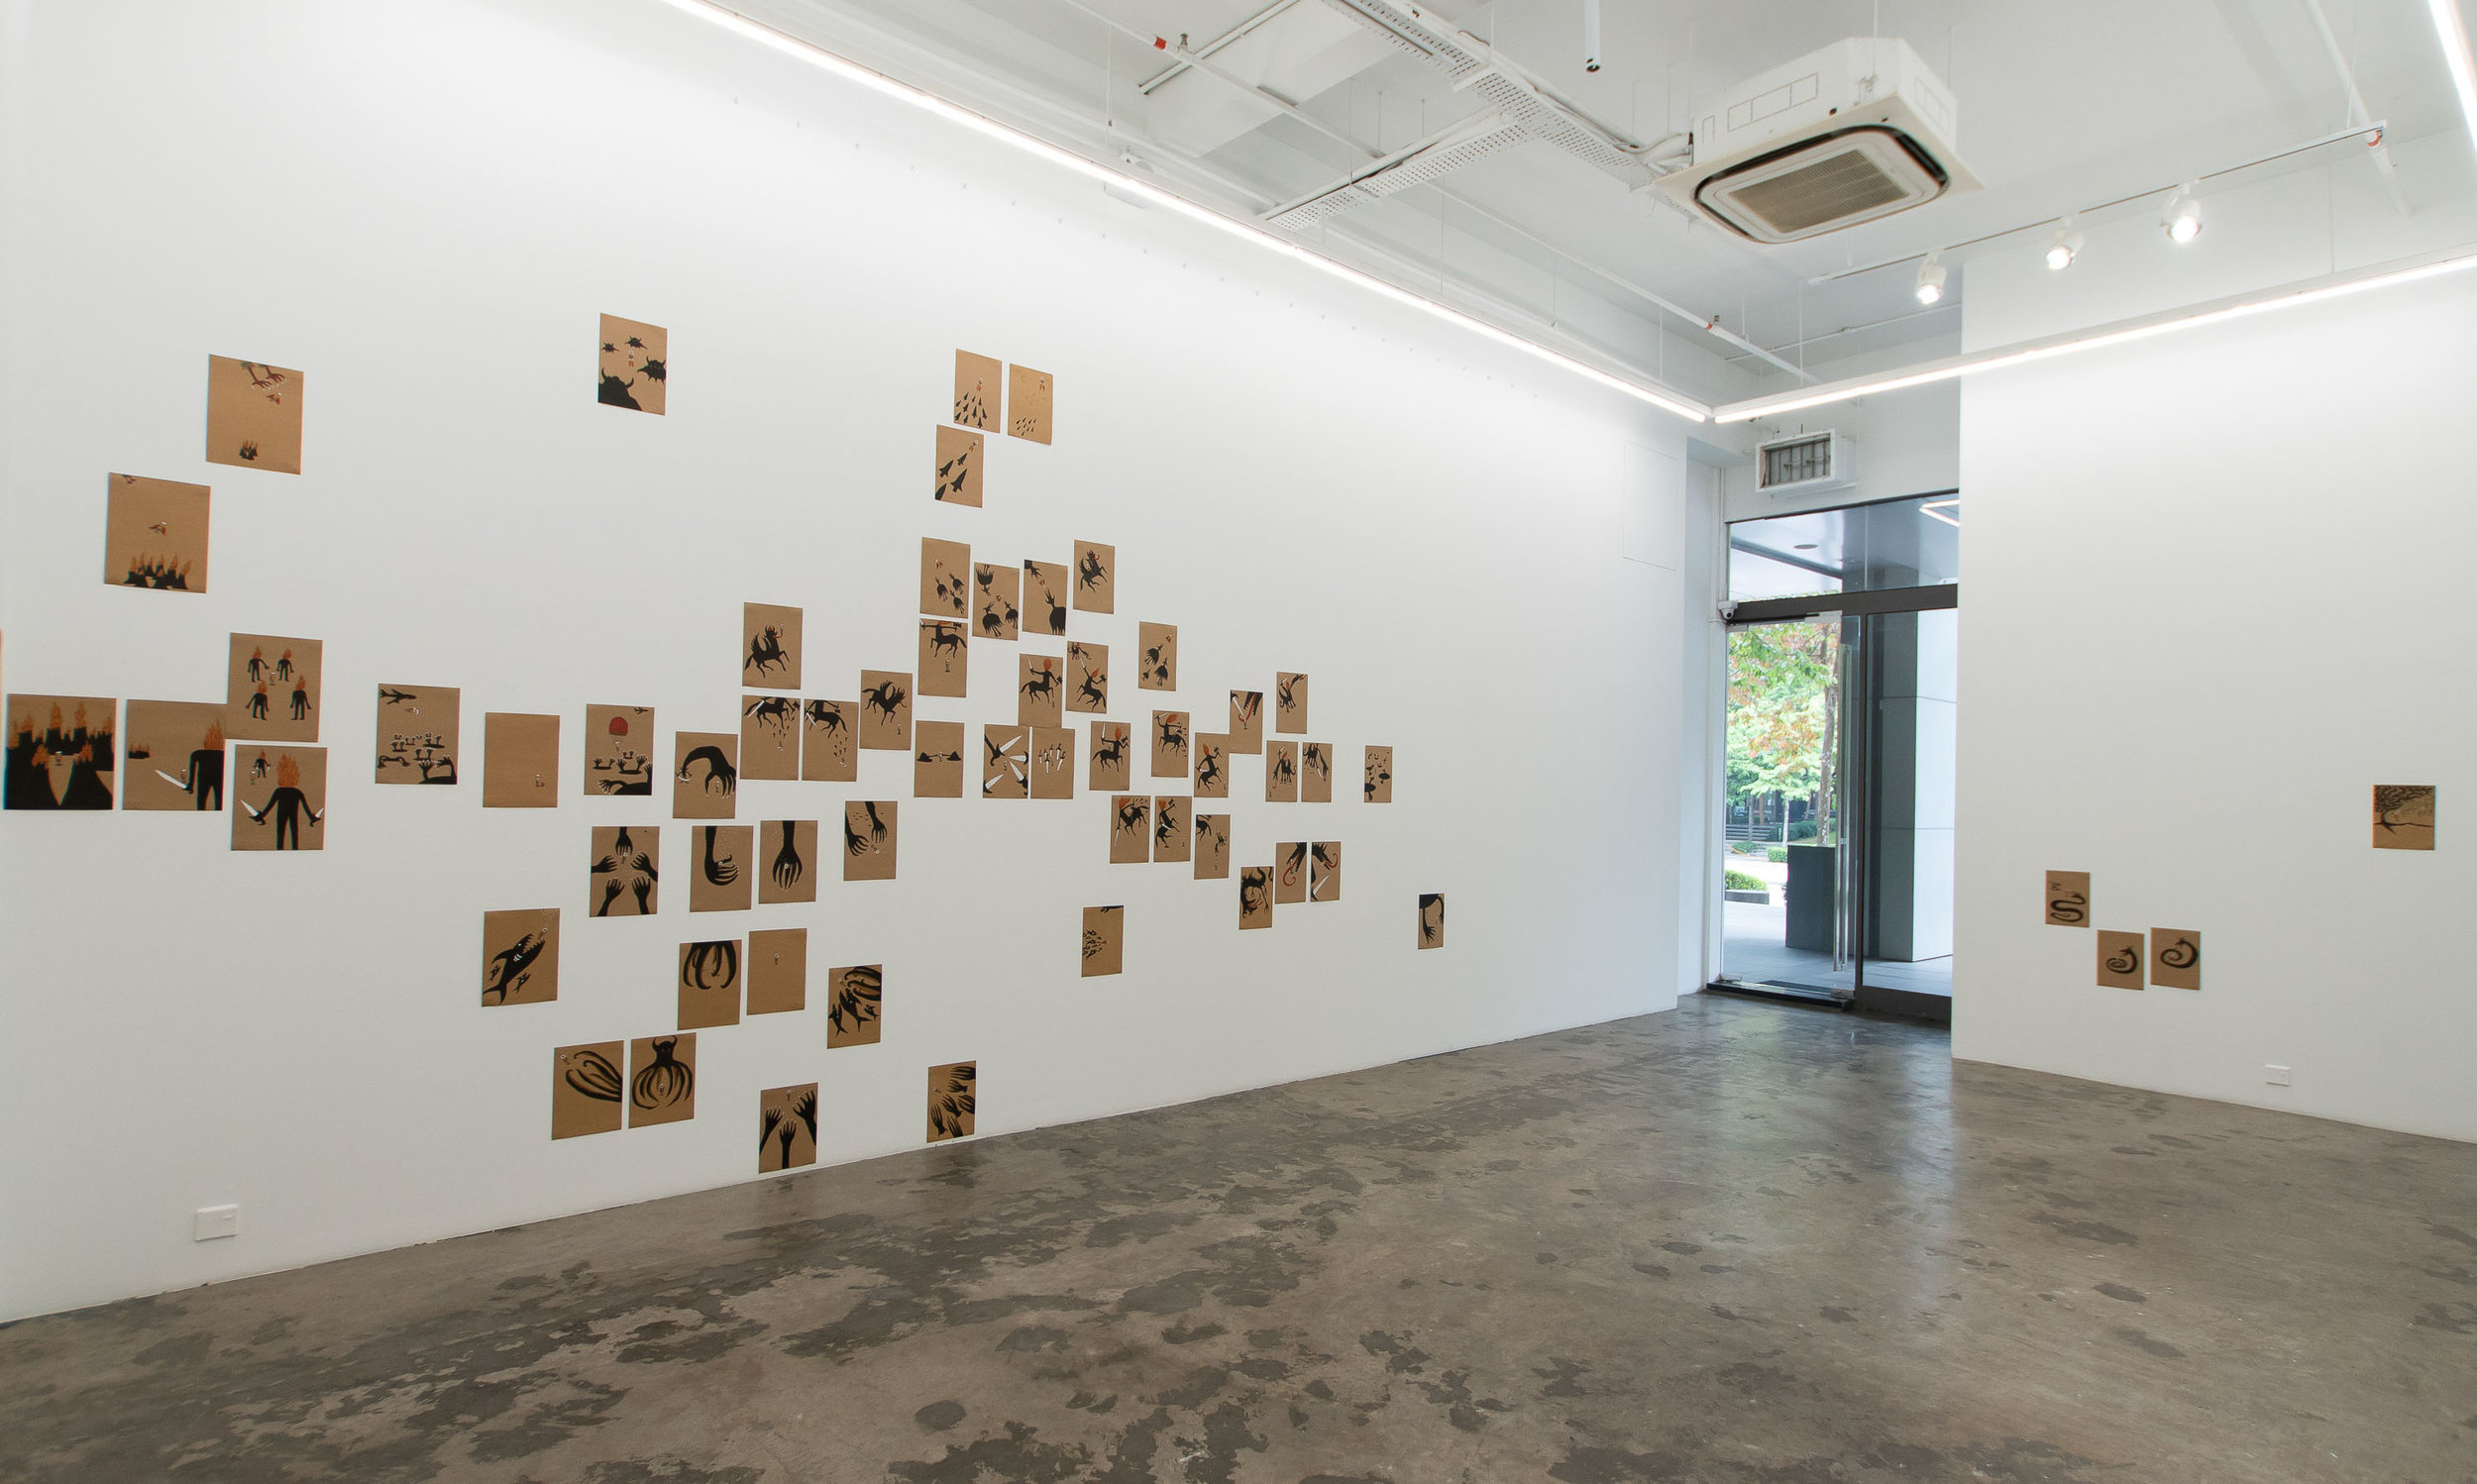 Roslisham Ismail (Ise), 'Till Kingdom Come', 2011, exhibition installation view. Image courtesy of A+ Works of Art.